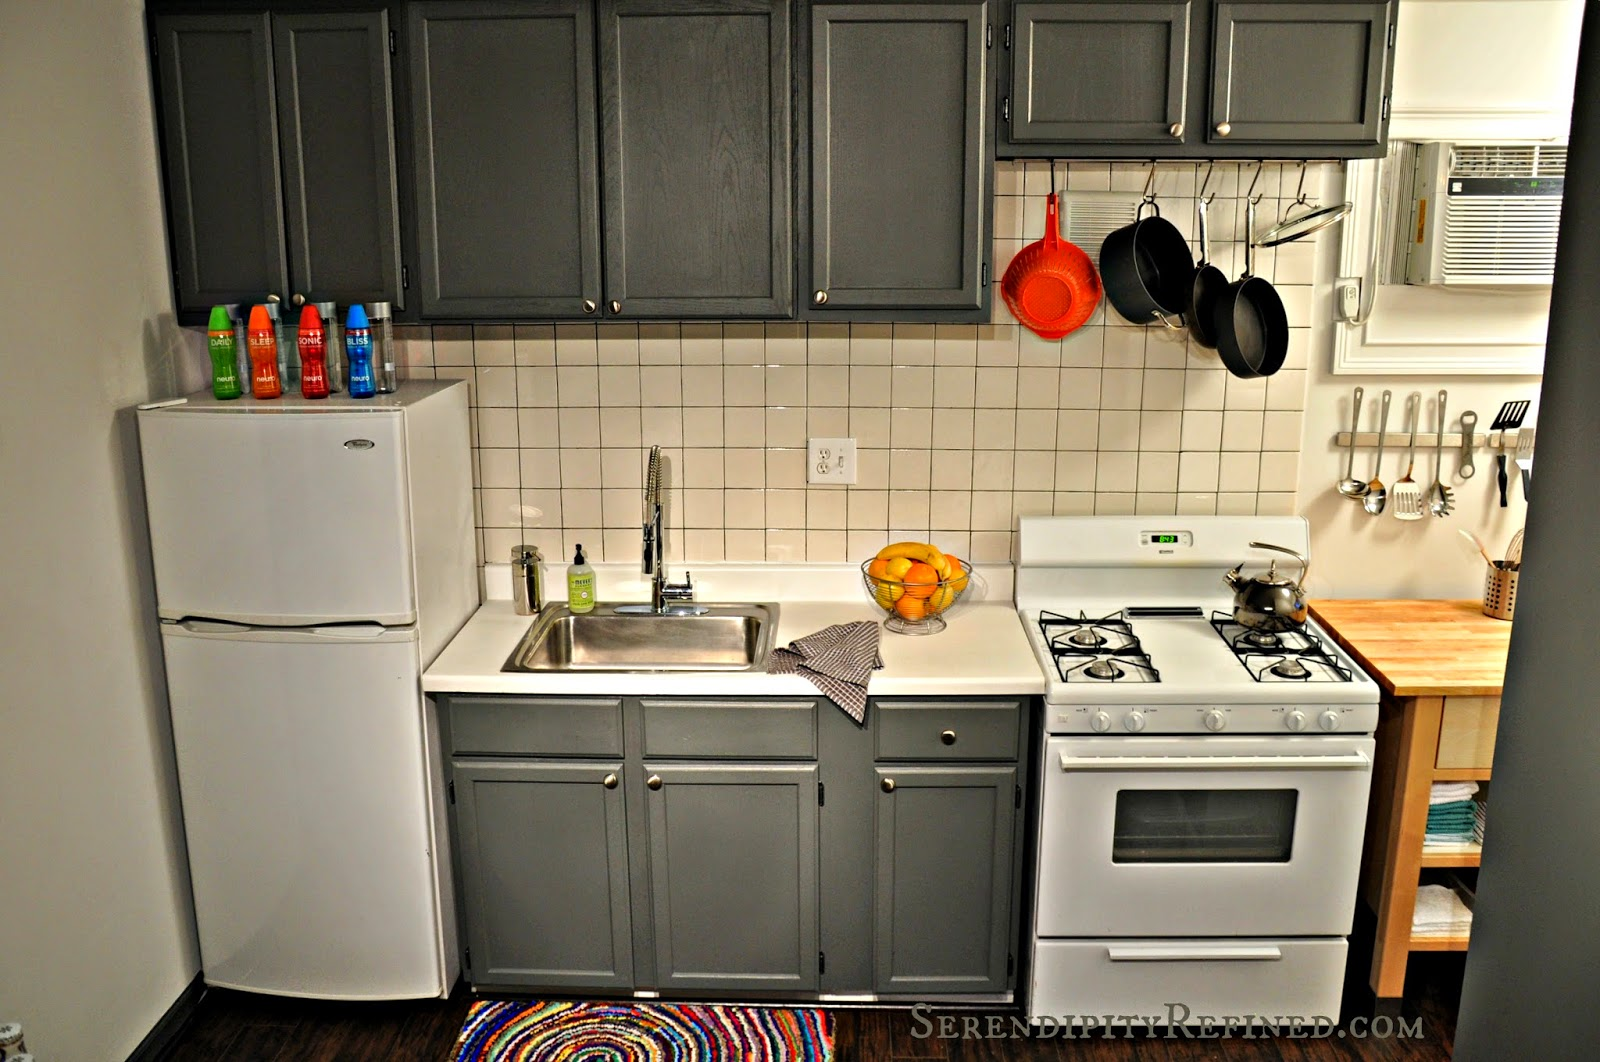 Small Apartment Kitchen Makeovers | 1600 x 1062 · 282 kB · jpeg | 1600 x 1062 · 282 kB · jpeg